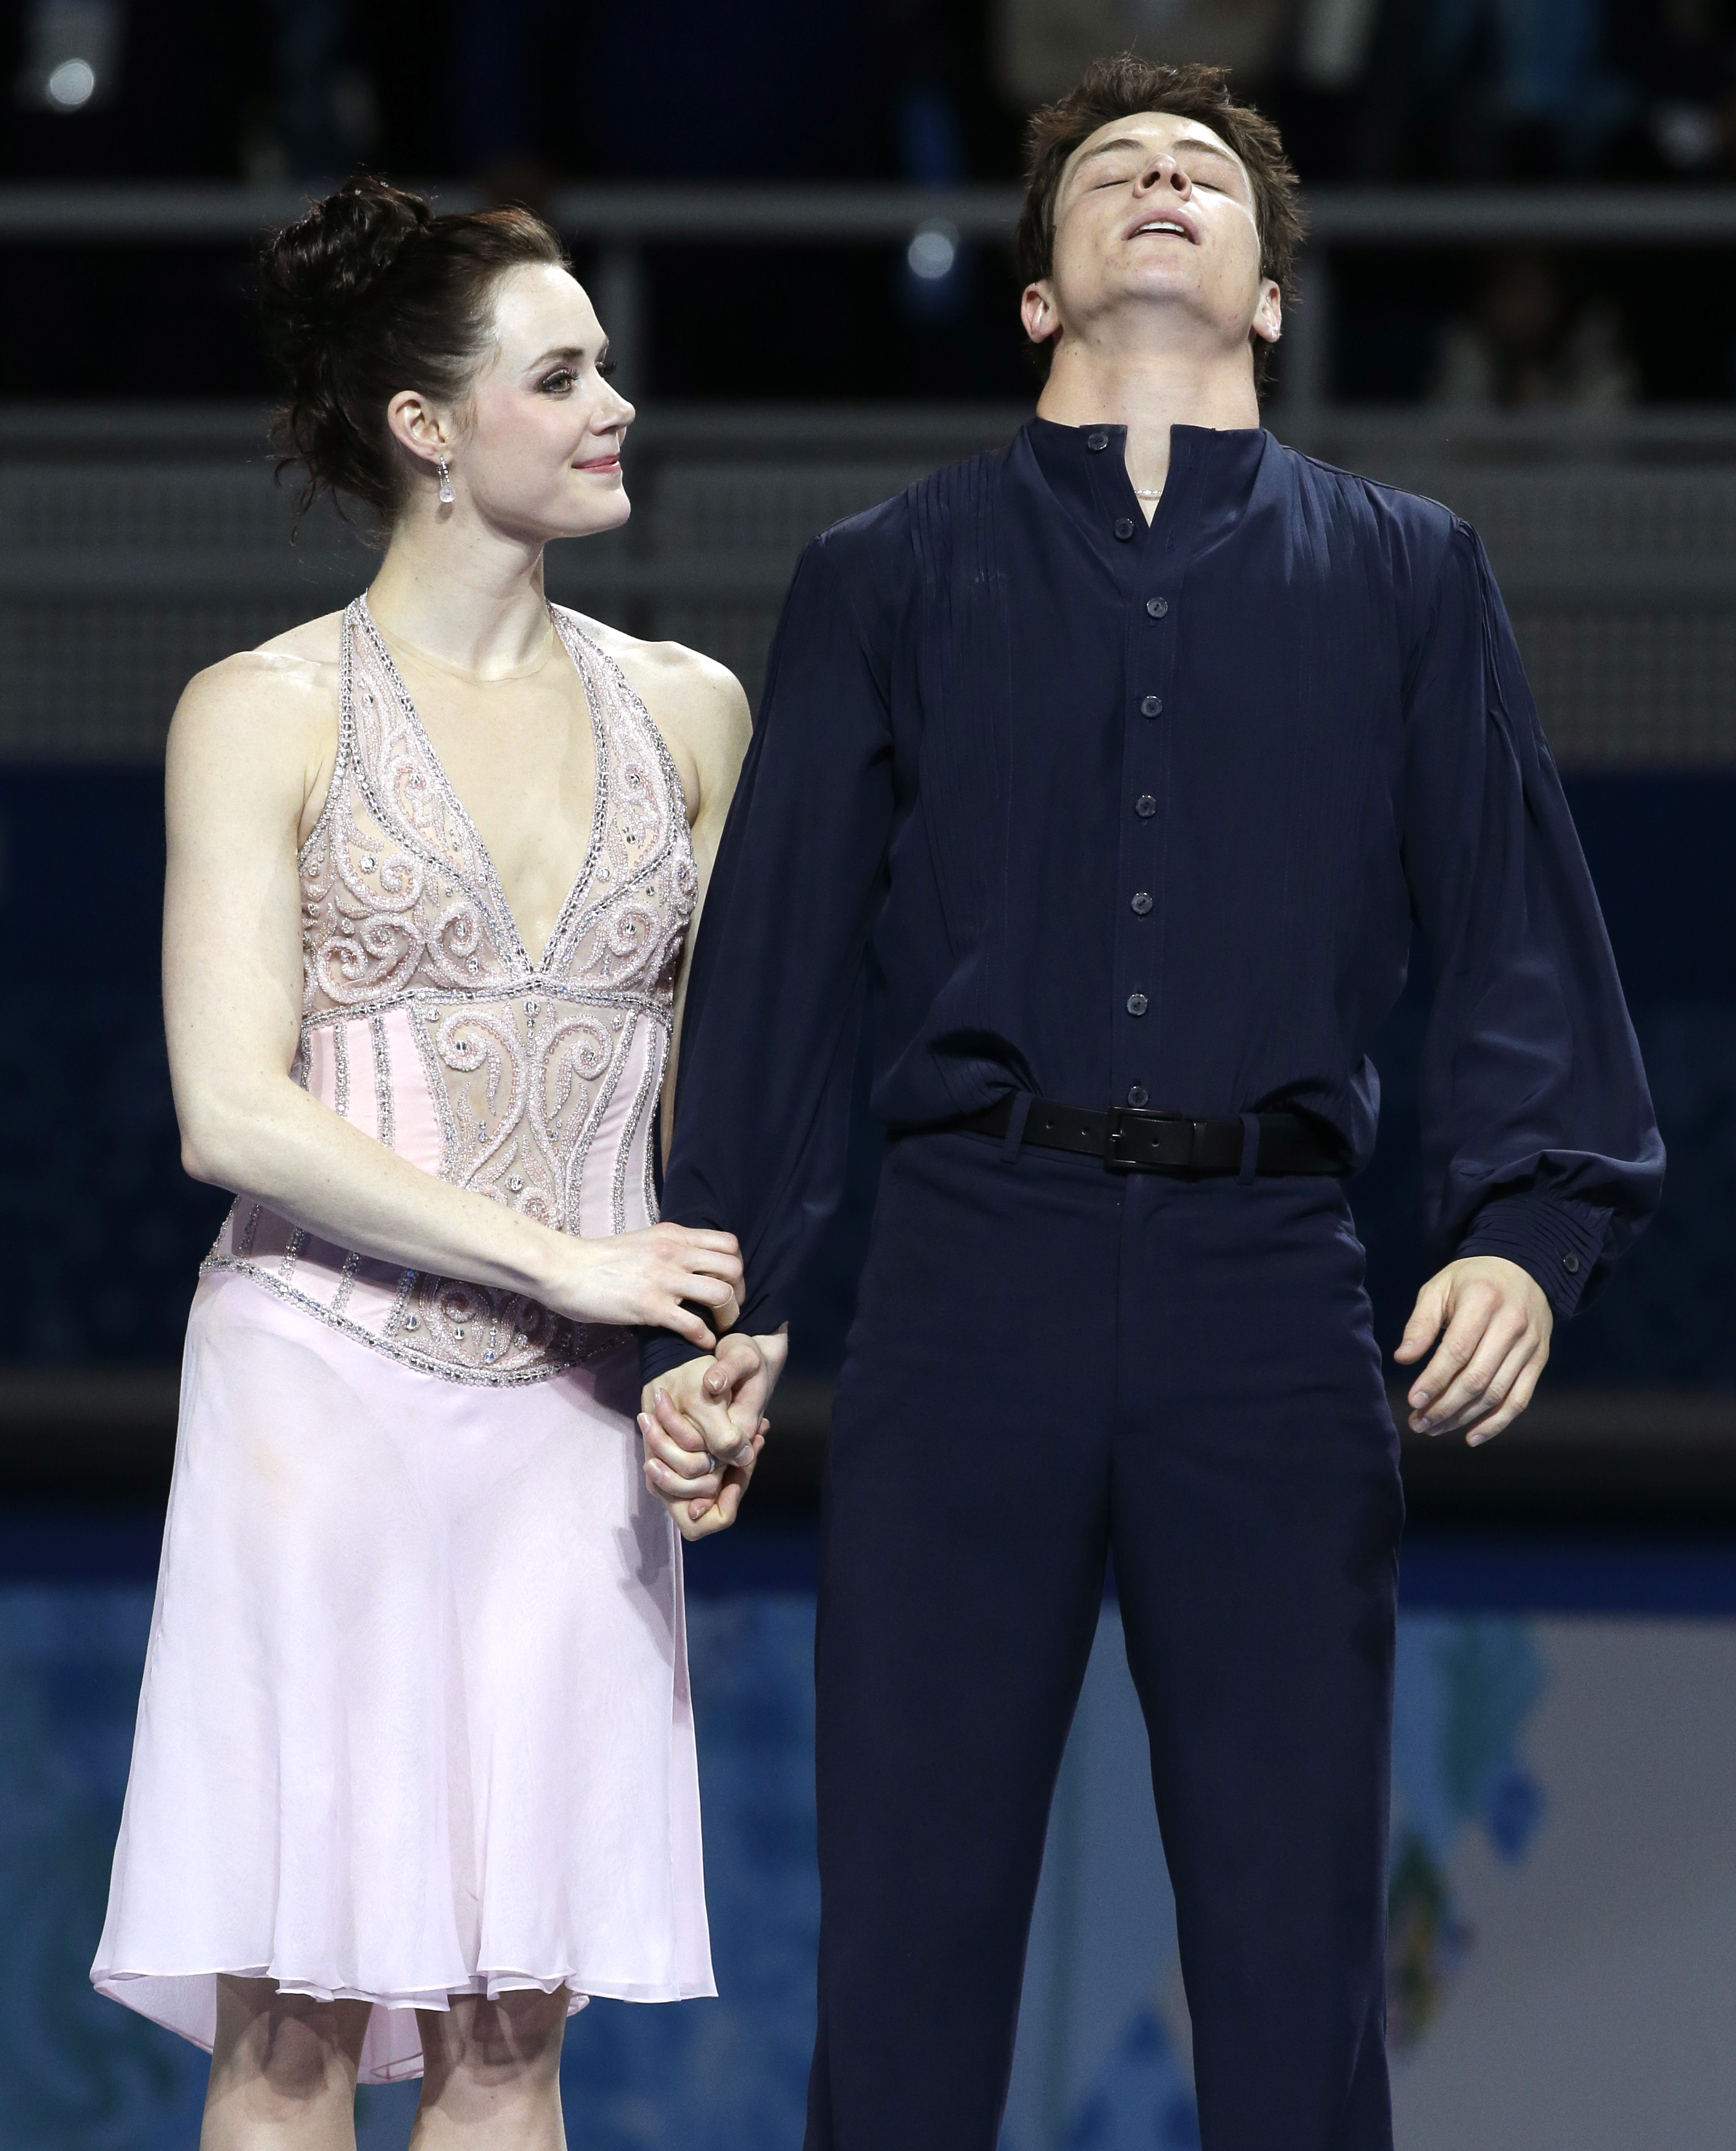 Tessa Virtue and Scott Moir of Canada react after placing second during the flower ceremony ice dance free dance figure skating finals at the Iceberg Skating Palace during the 2014 Winter Olympics, Monday, Feb. 17, 2014, in Sochi, Russia. (AP Photo/Darron Cummings)